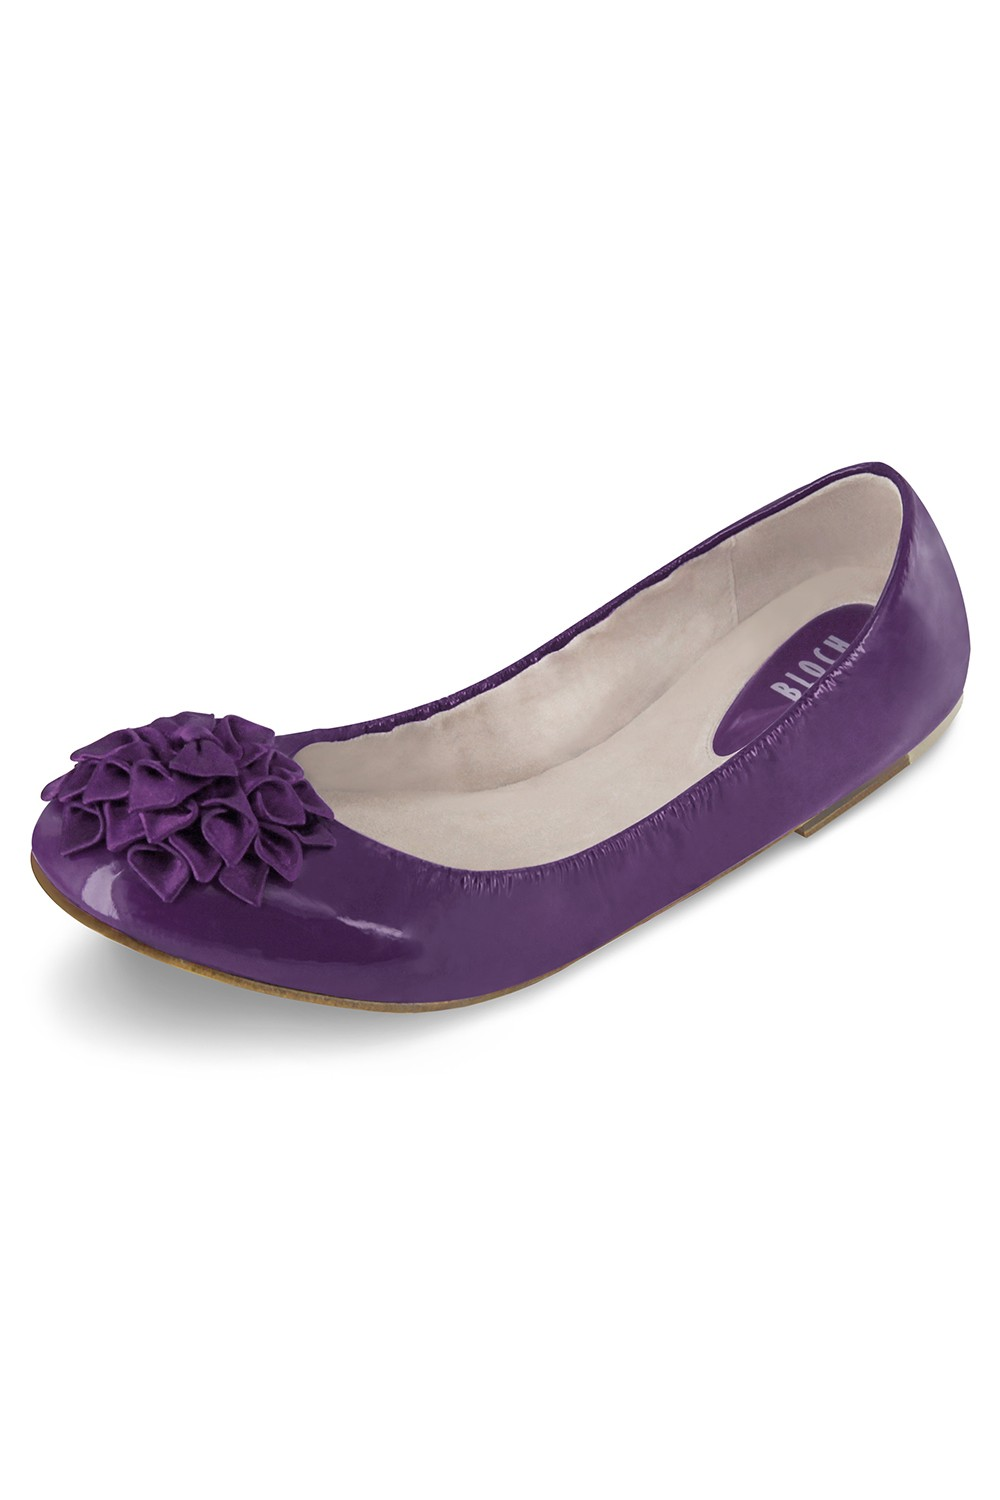 Rosette Ladies Ballet Flat Womens Fashion Shoes